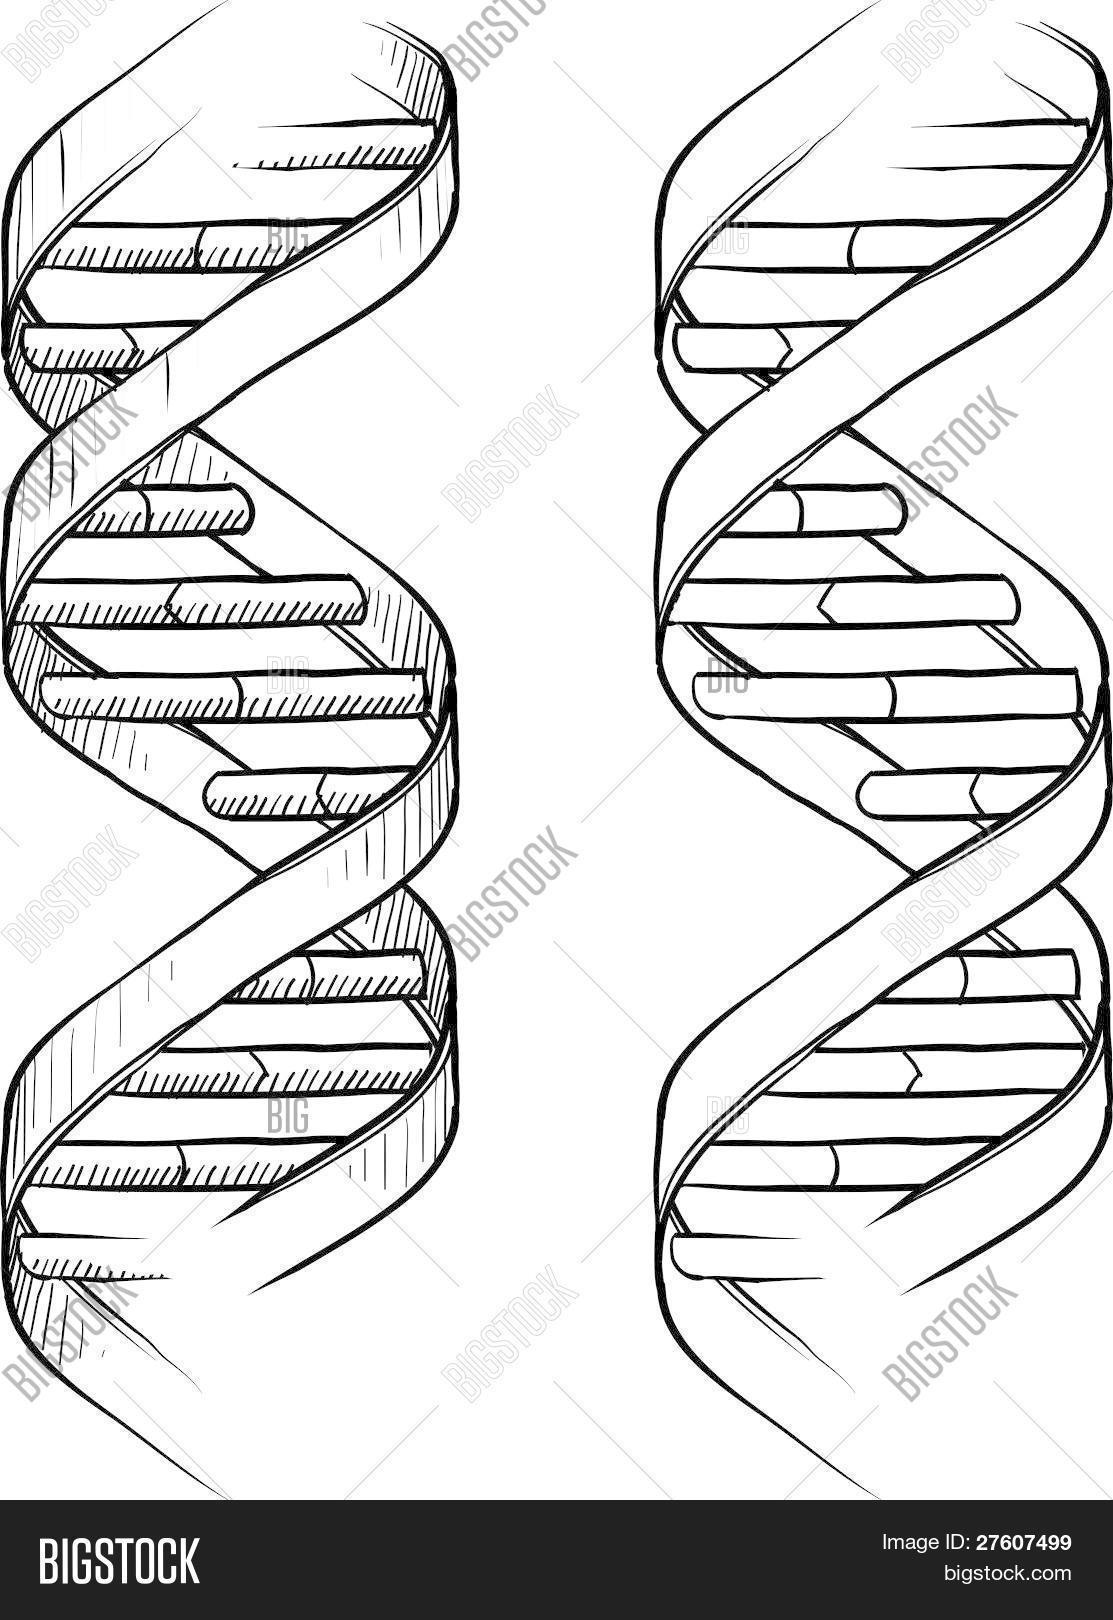 Dna Double Helix Sketch Vector Amp Photo